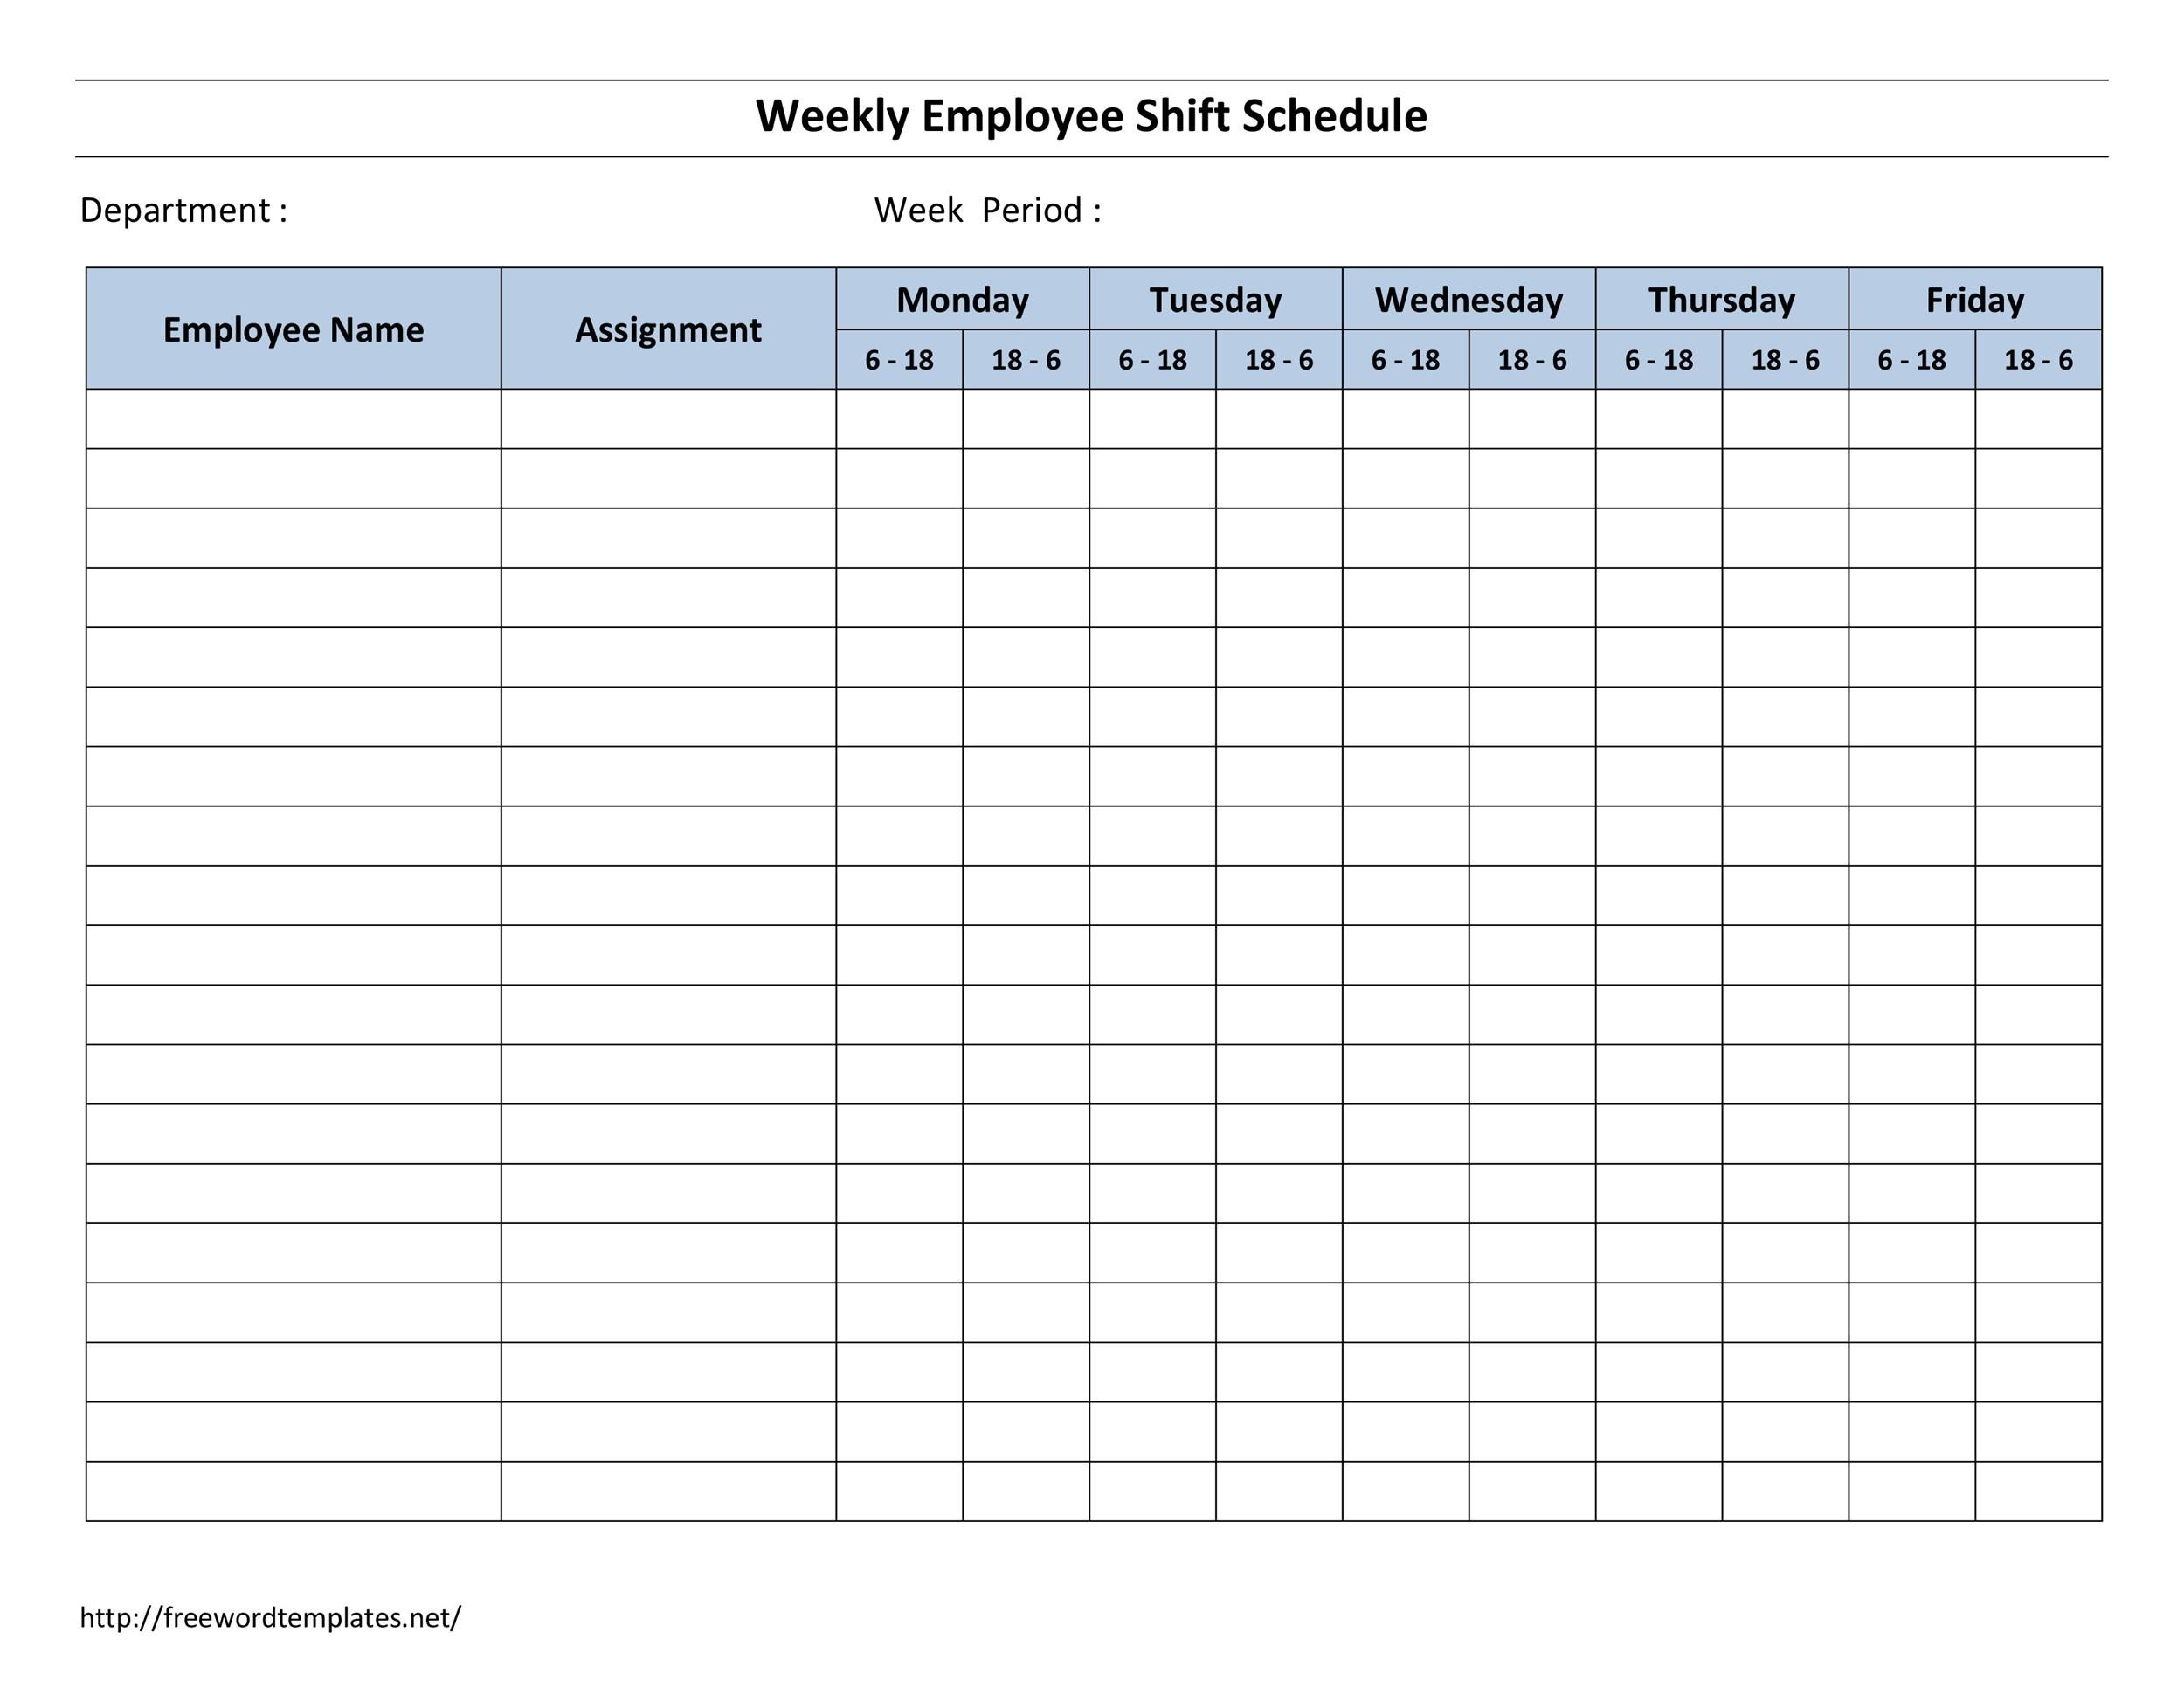 14 Dupont Shift Schedule Templats for any Company Free - Template Lab